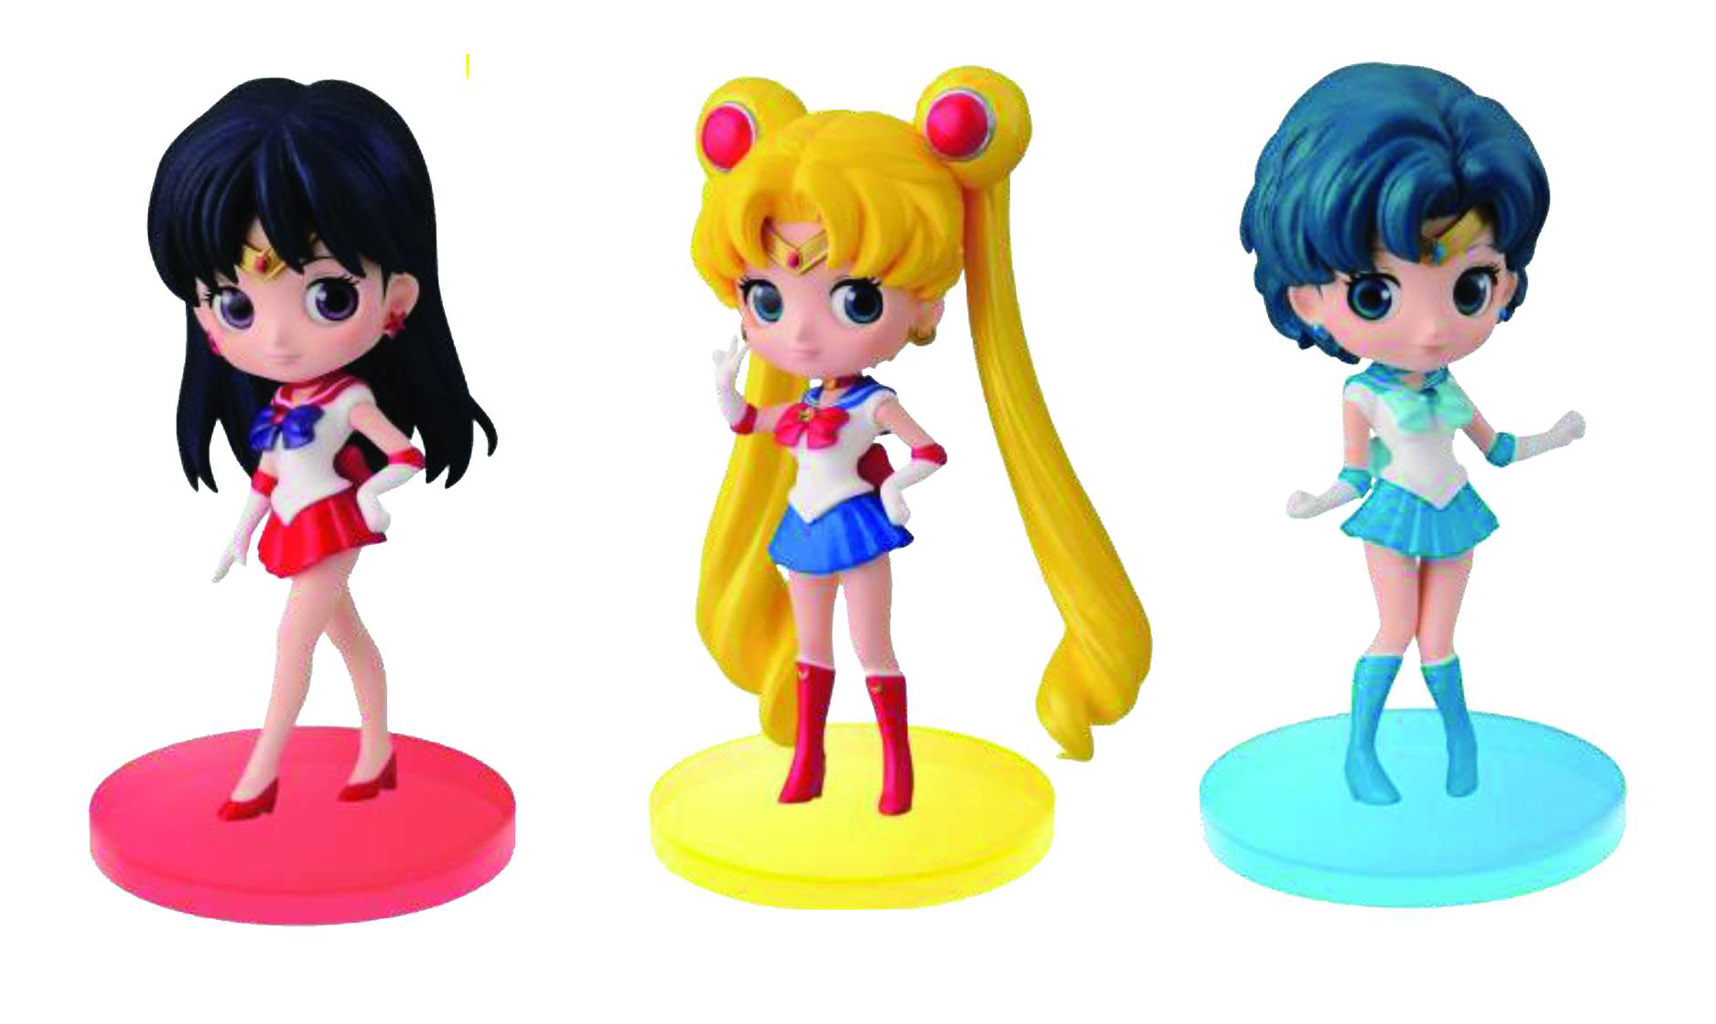 Sailor Moon Q-Posket-Petit-Volume 1 Sailor Moon Figures